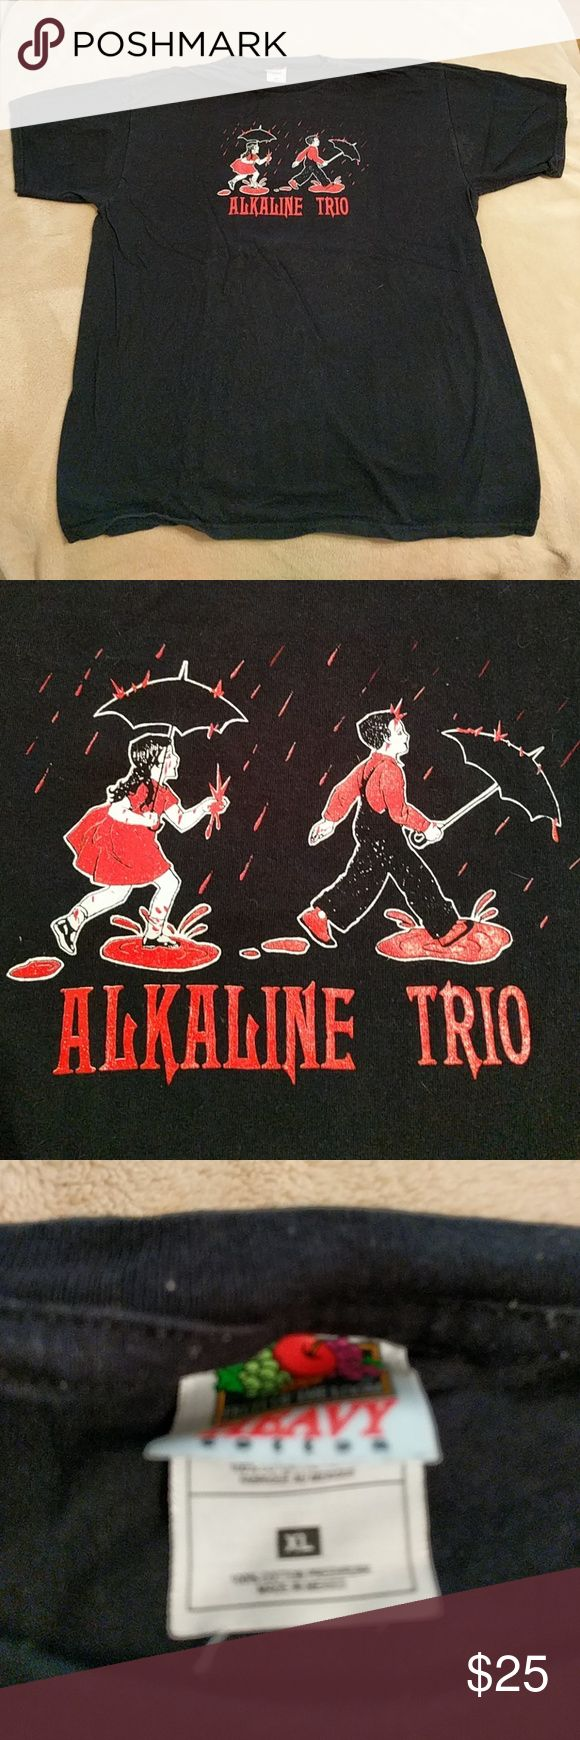 ALKALINE TRIO!!! Barely worn. Good as NEW!!! Fruit of the Loom Shirts Tees - Short Sleeve